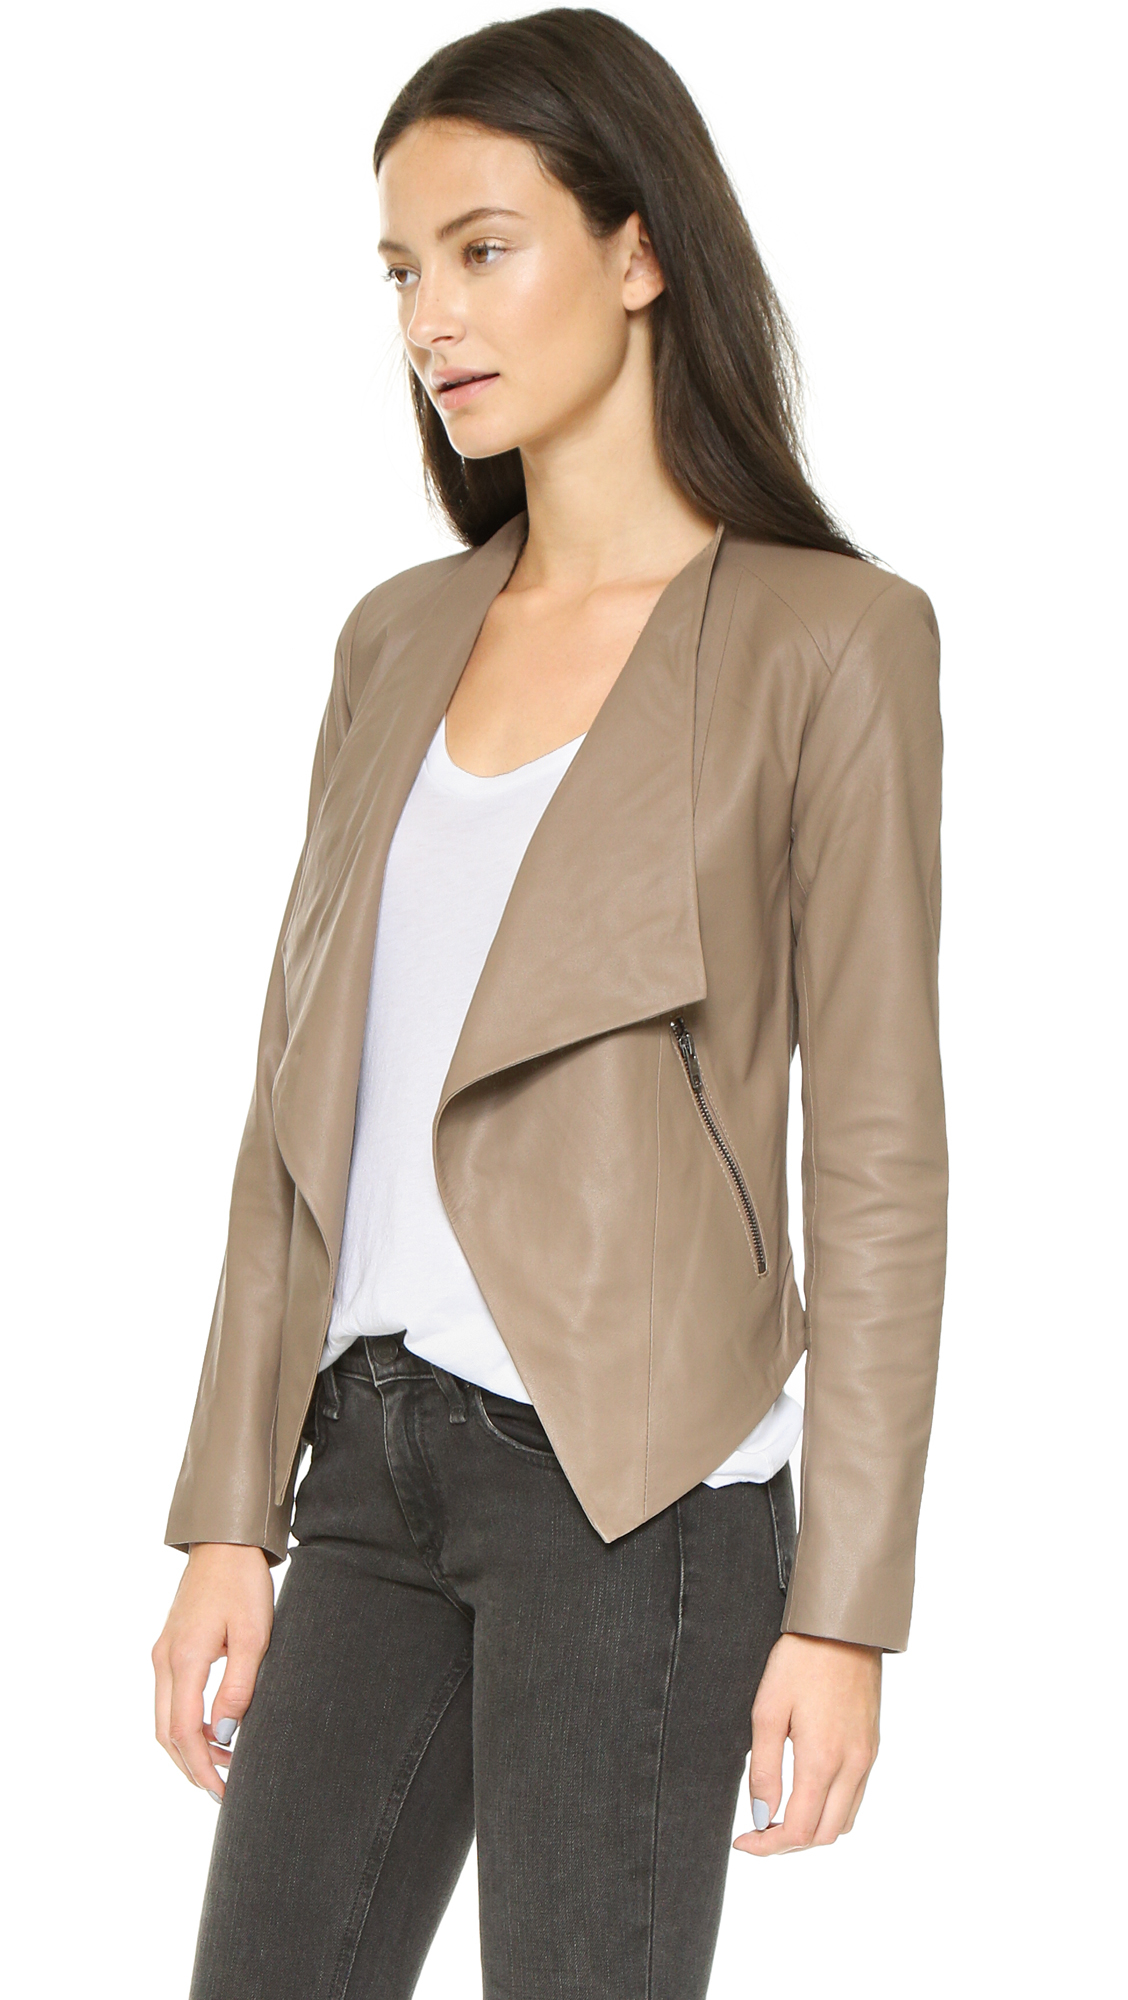 at drape suede zso faux jacket zappos in nyc sand women shipped blank stoner free drapes leather coats outerwear moto